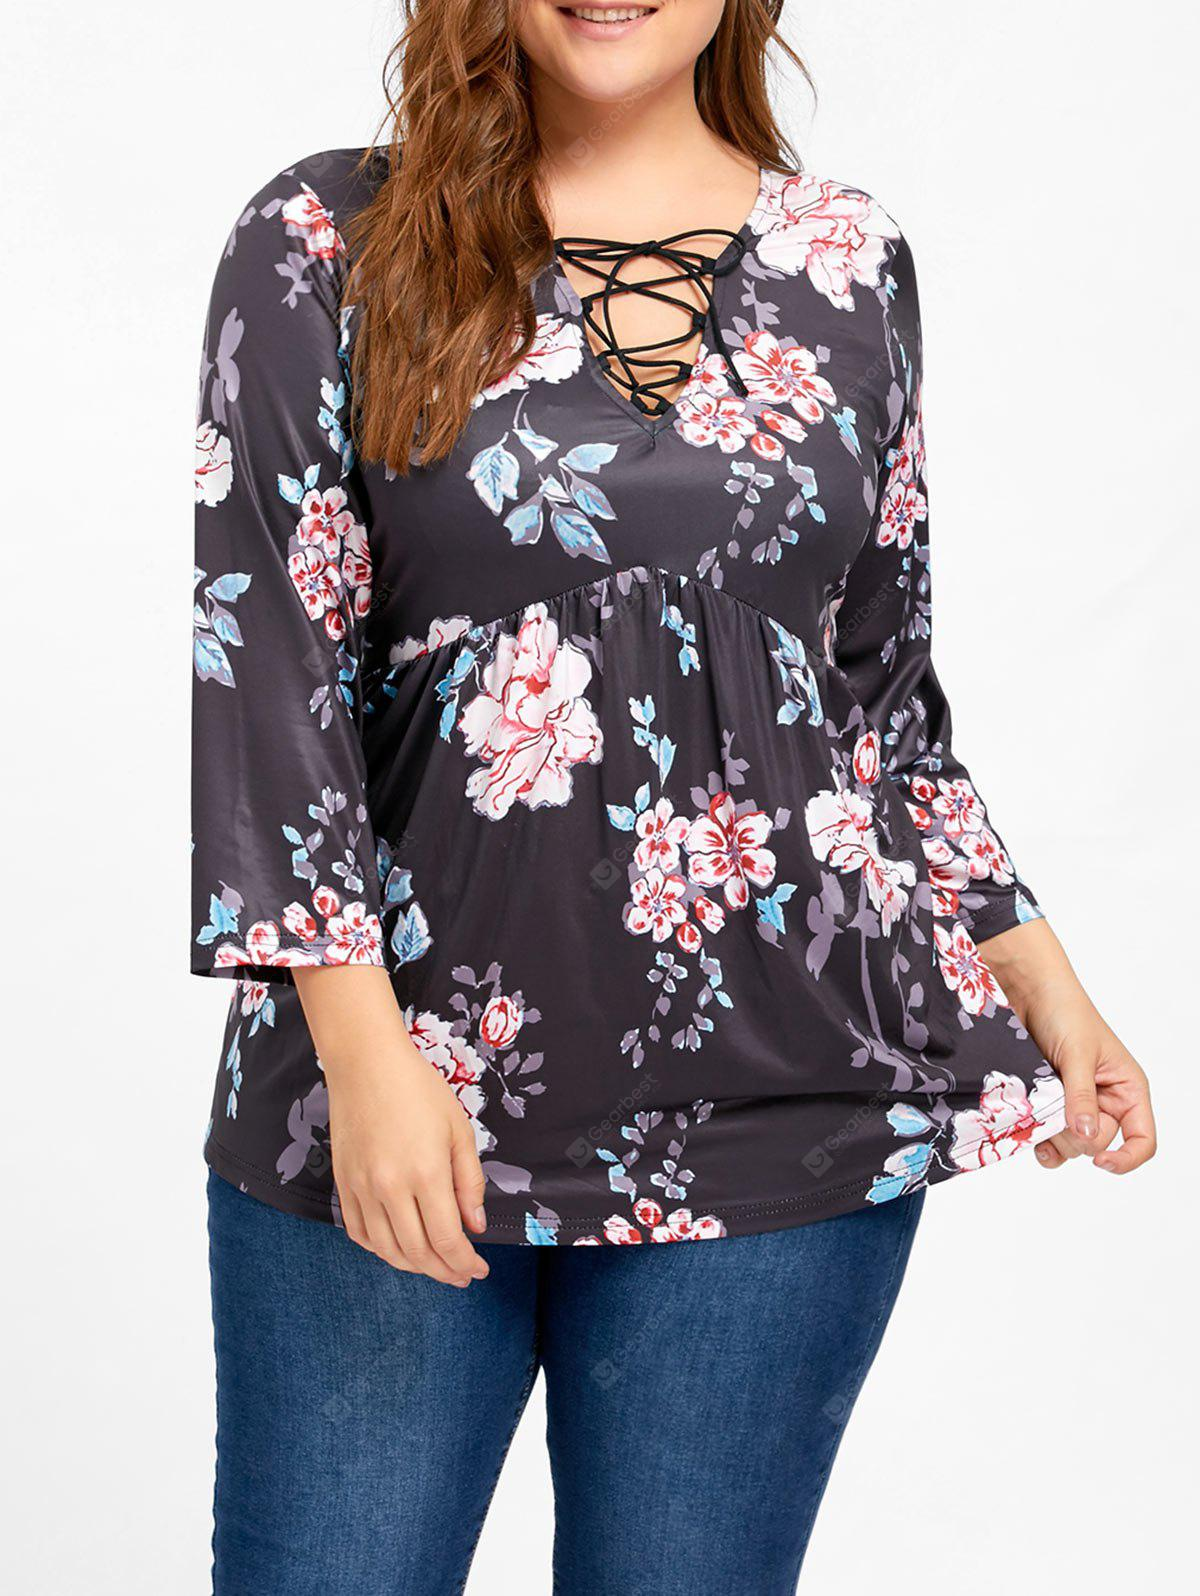 Lace Up Floral Print Plus Size Tee